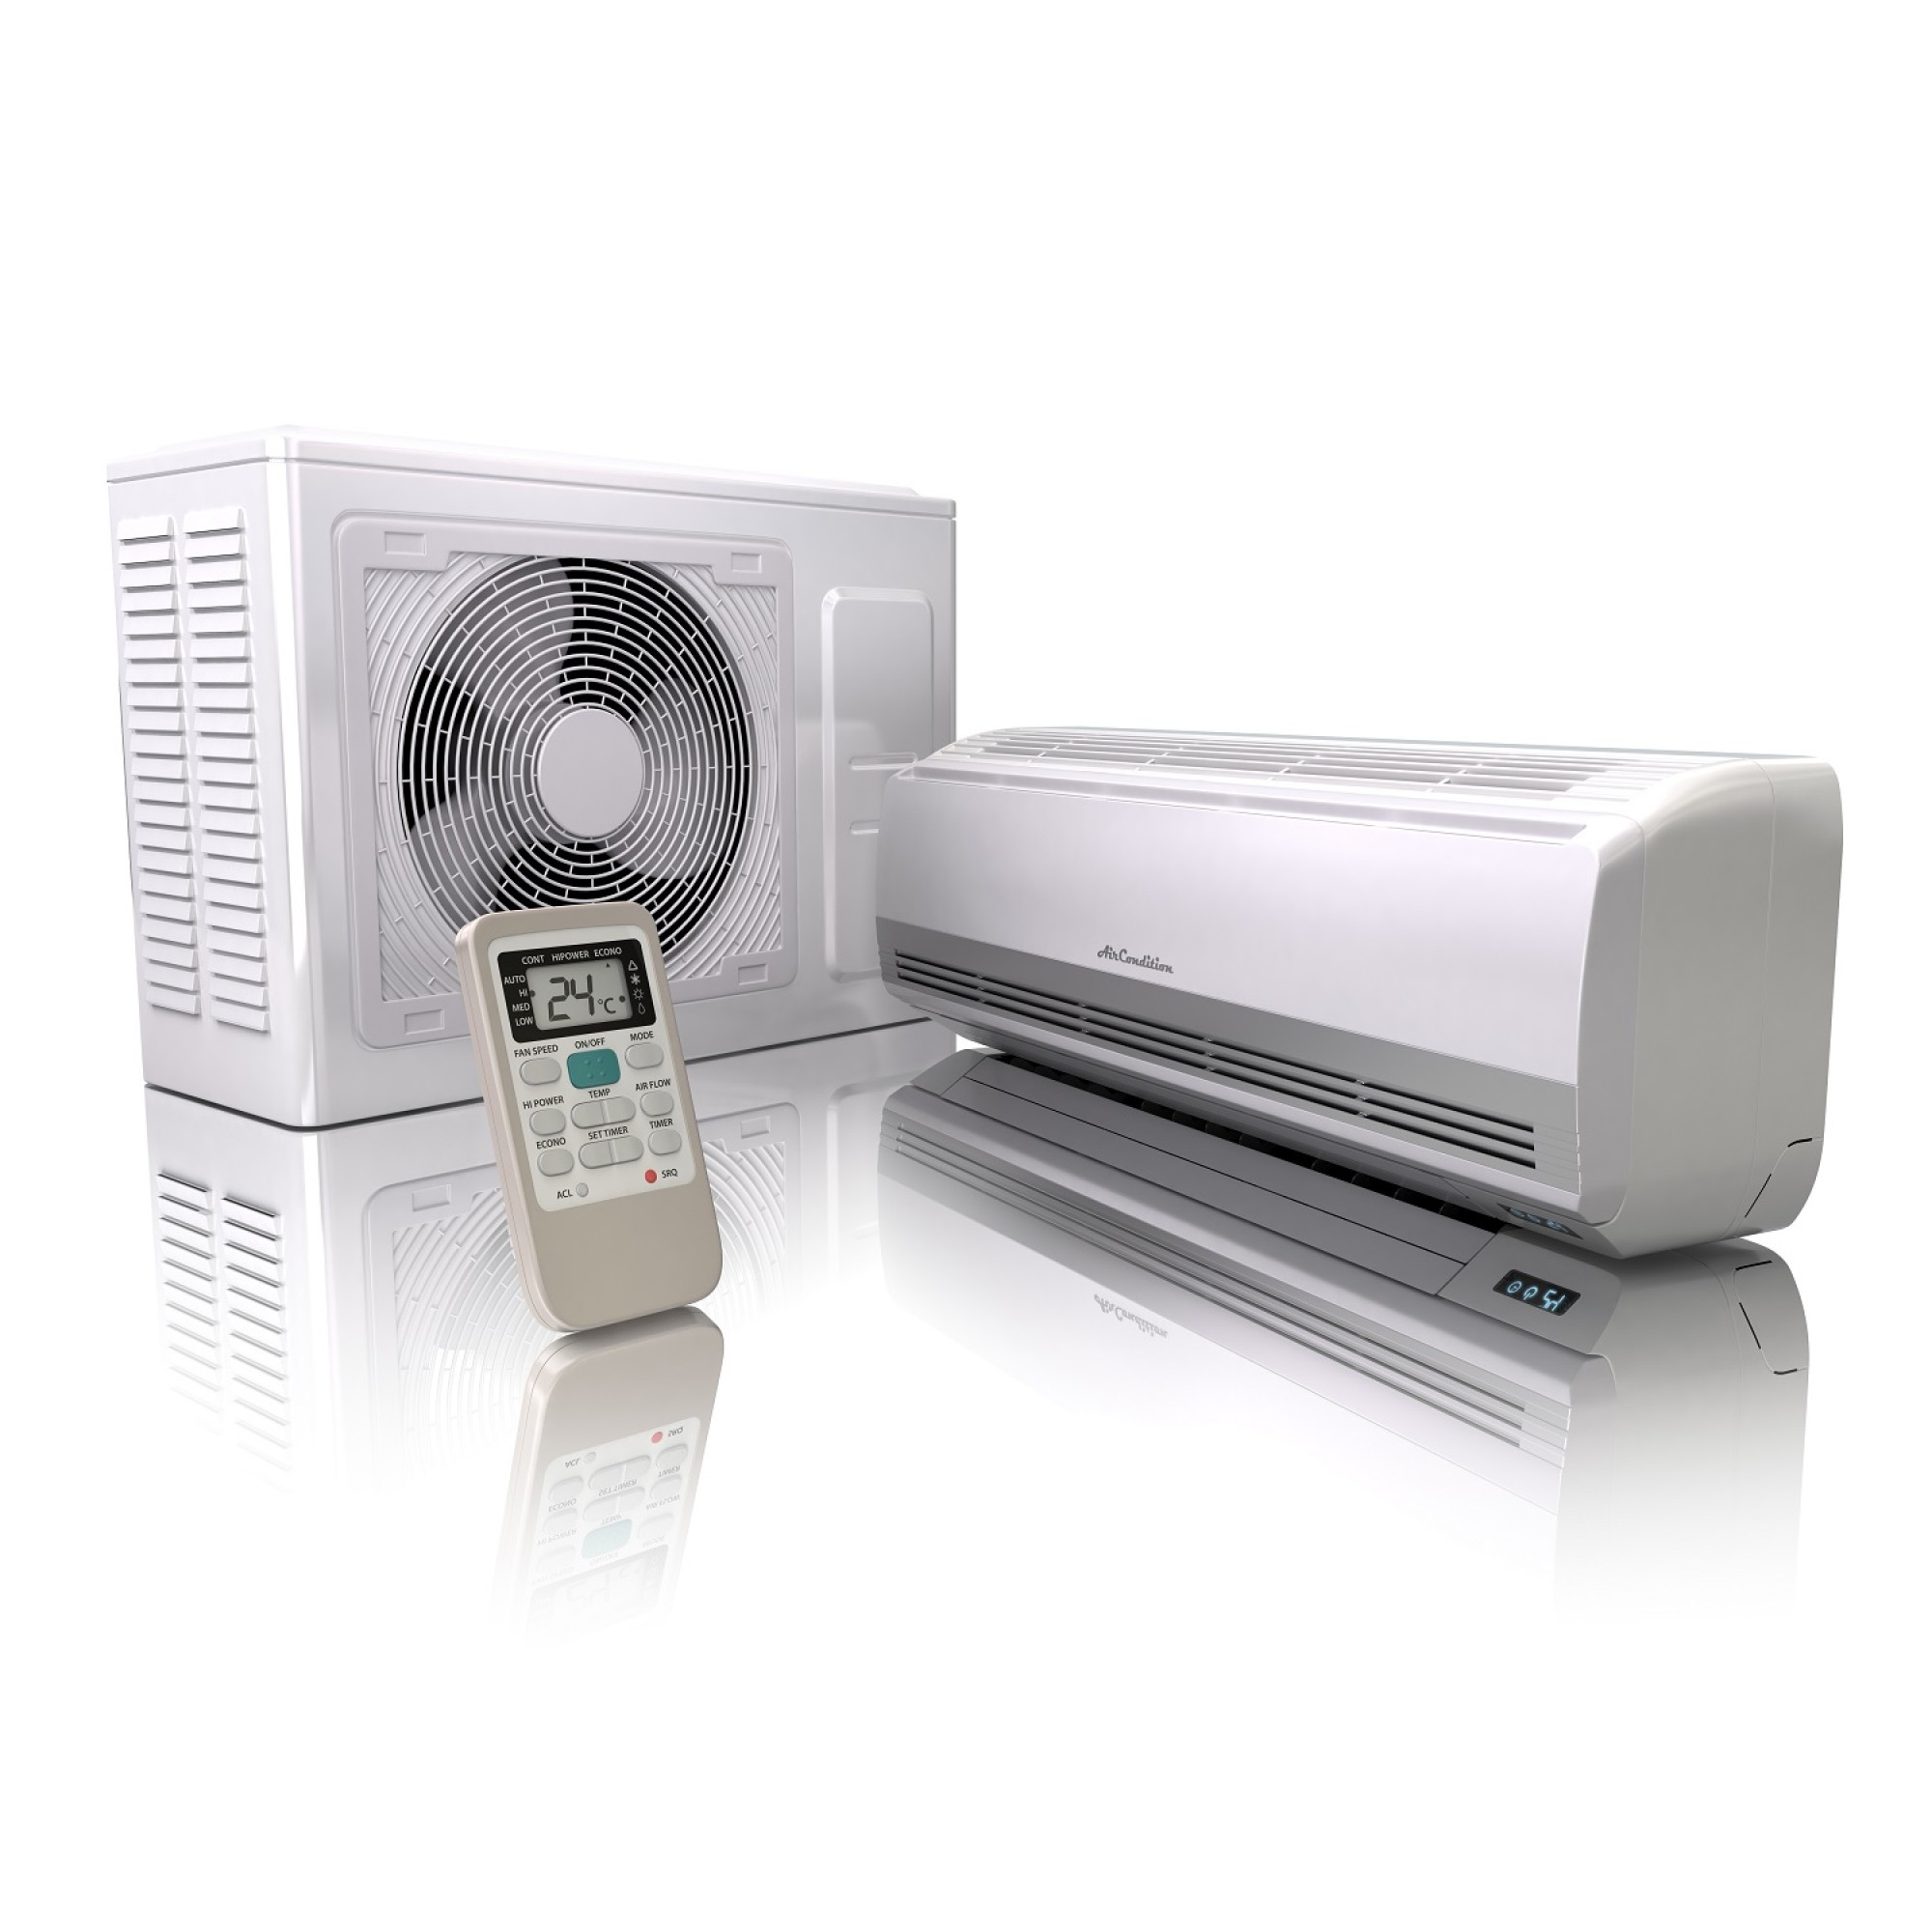 Q & A Ductless heat pump